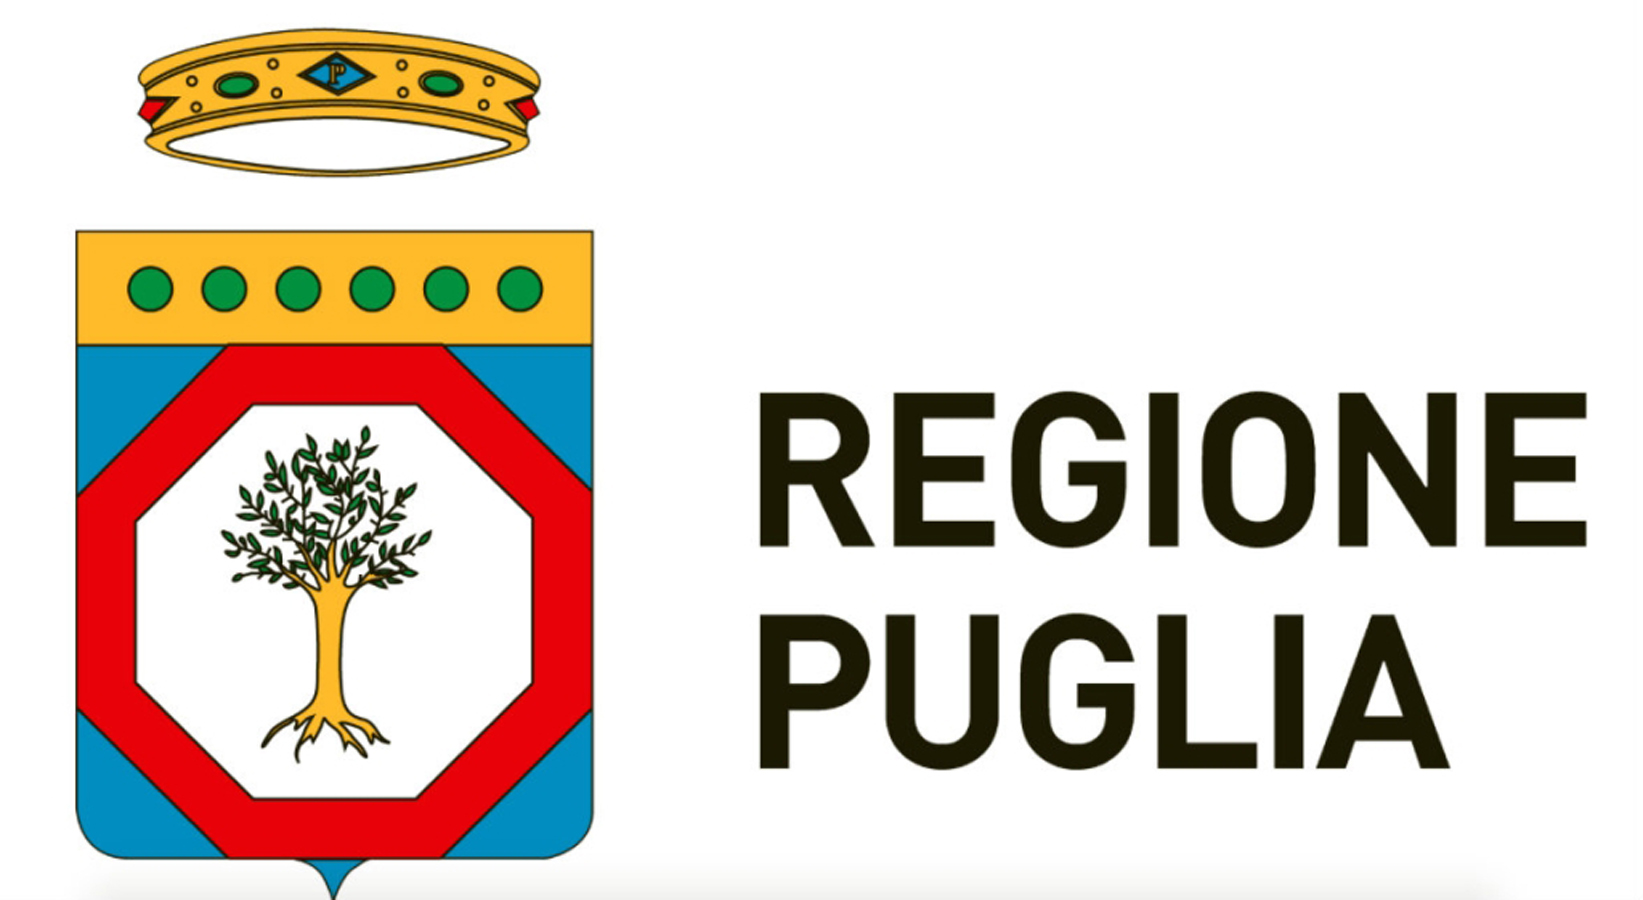 ooo regione commerciale